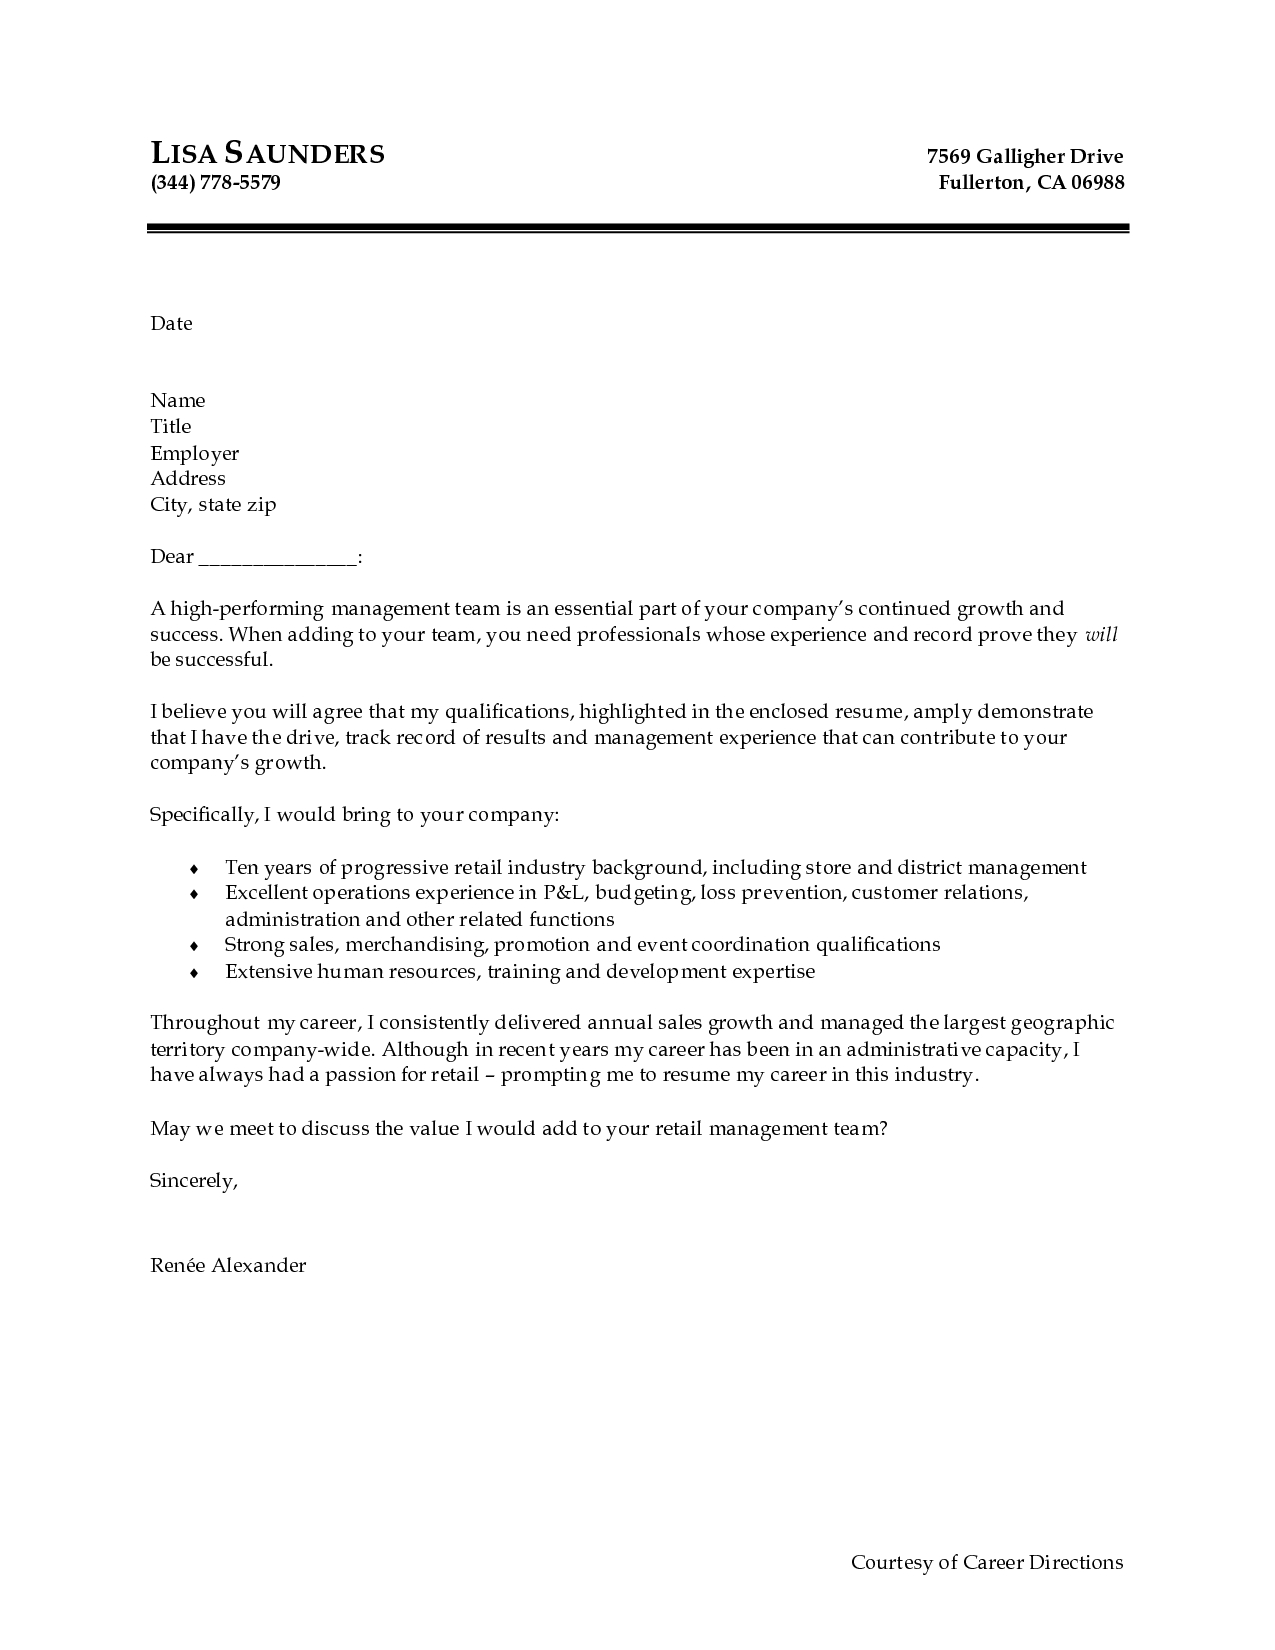 Best Cover Letter Ever Examples Cover Letter Examples  Sample Cover Letters For Resume